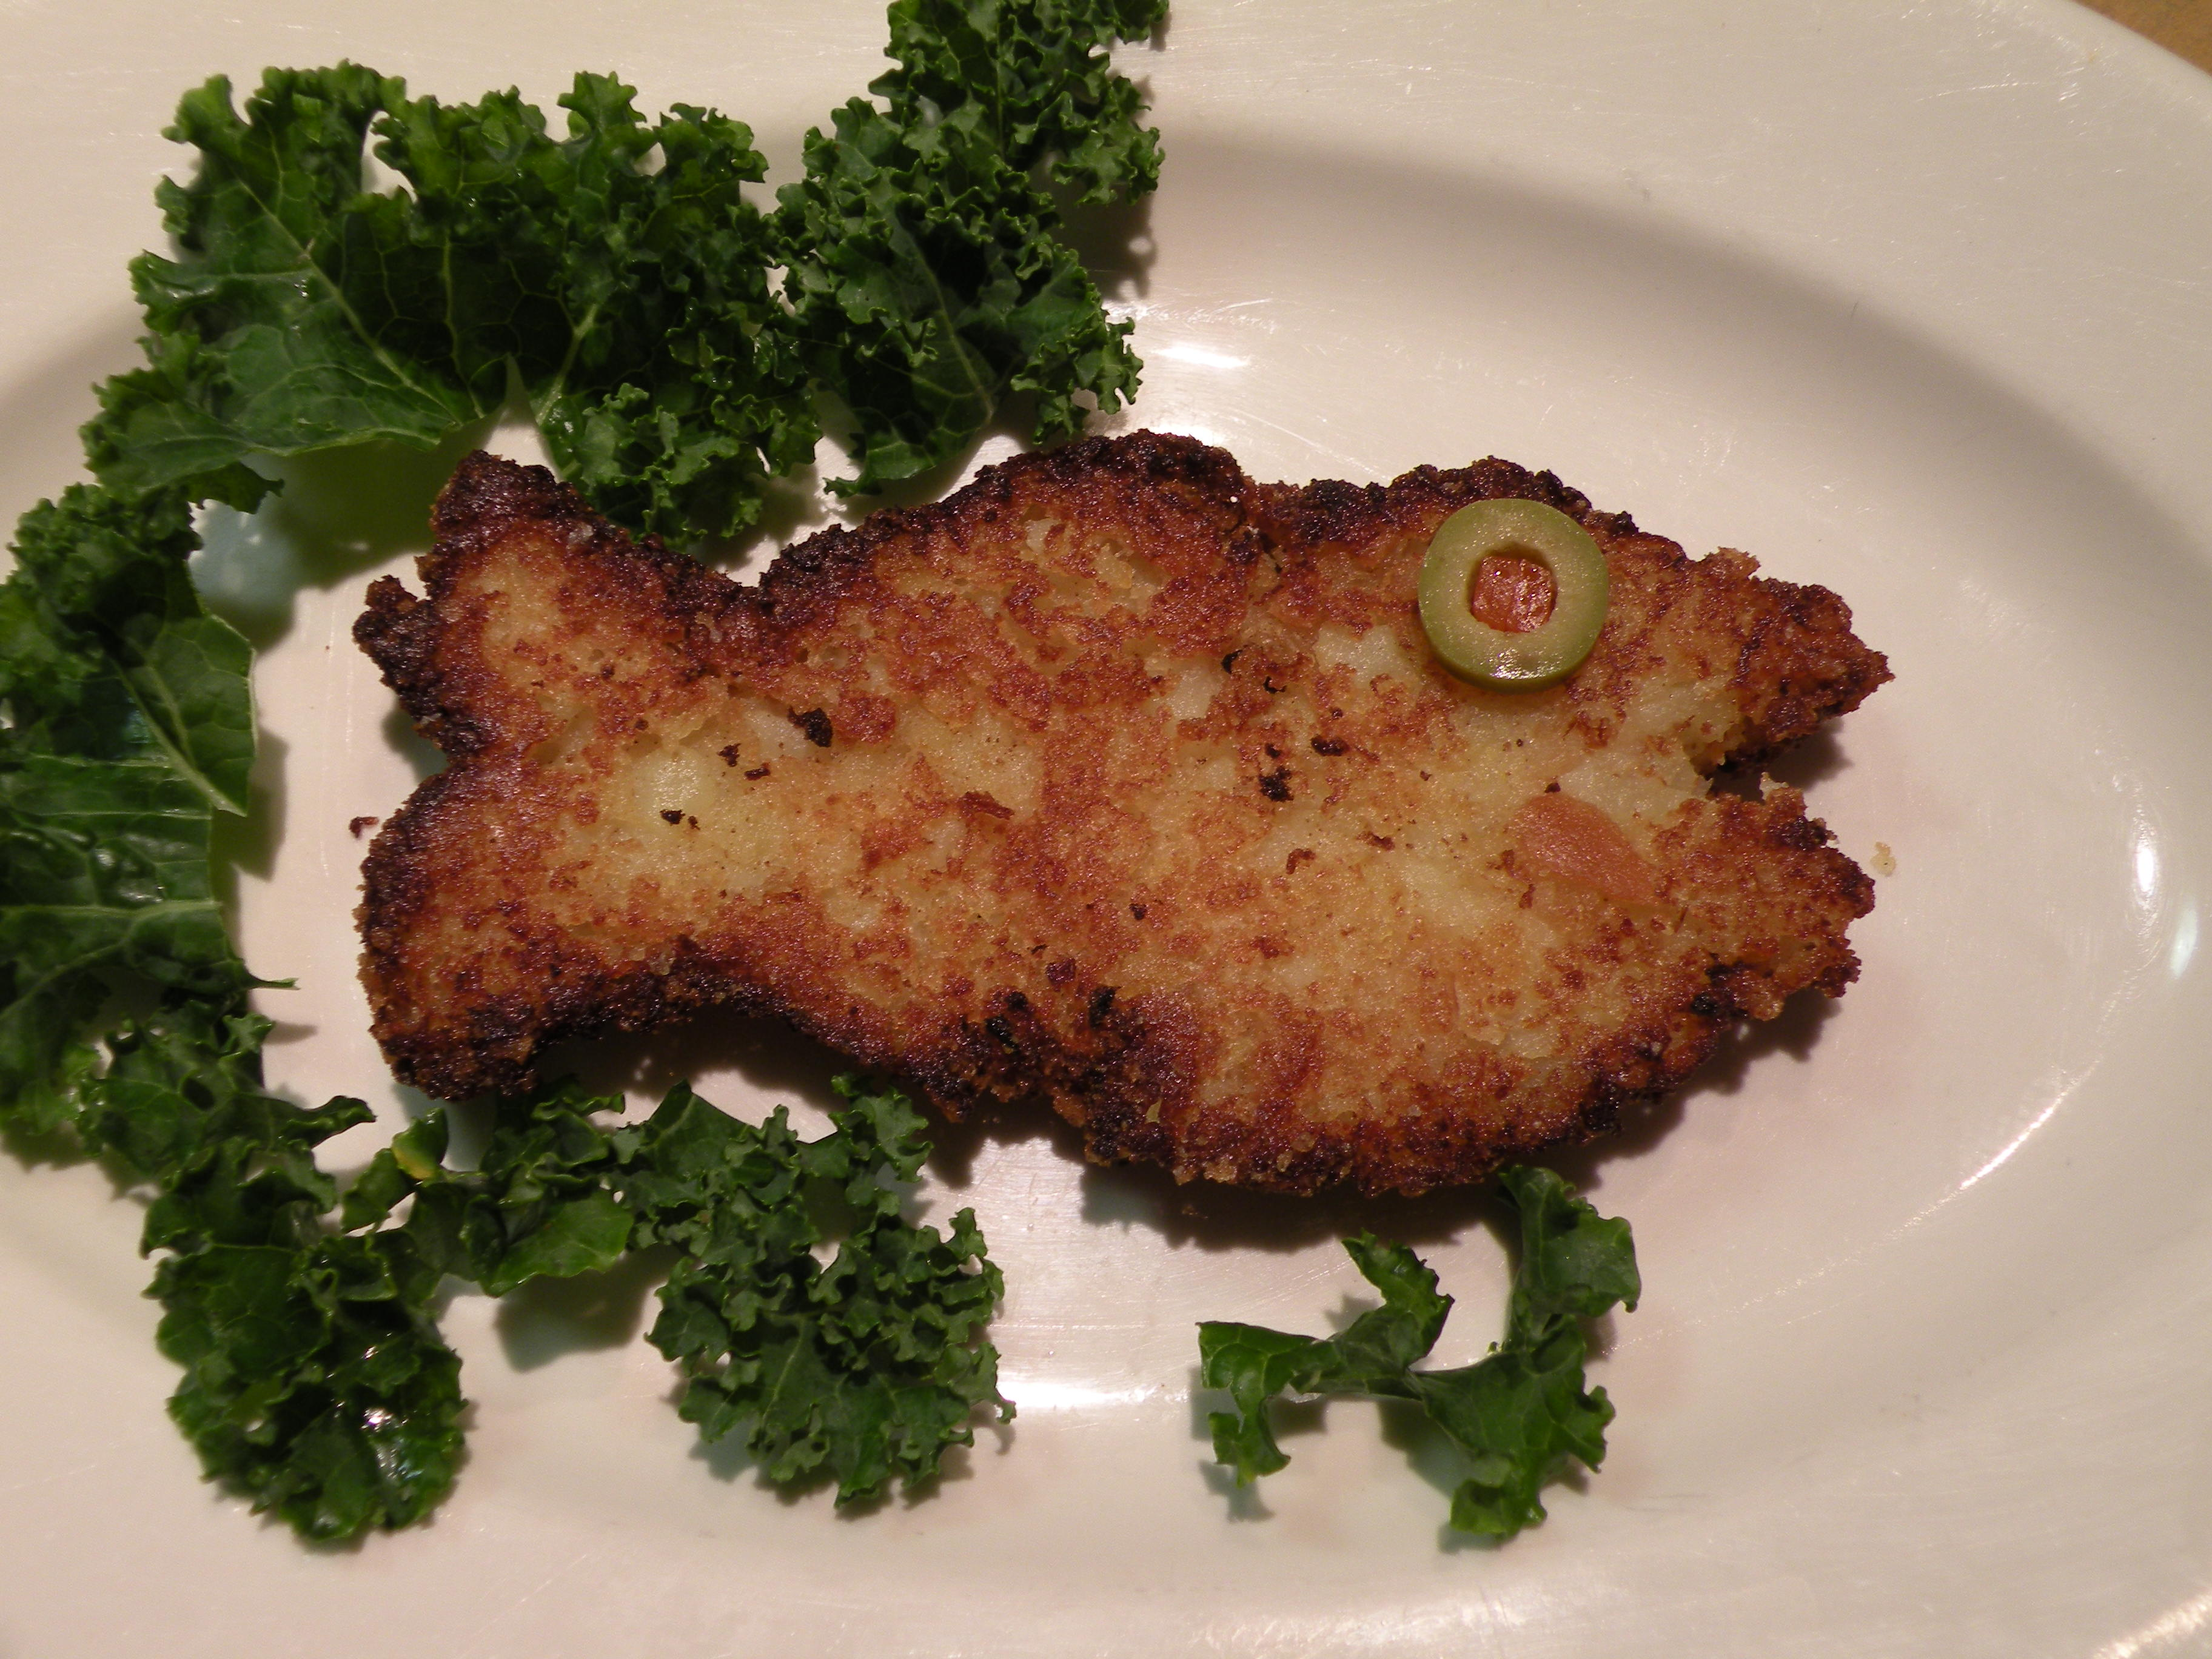 Closure In The Form Of A Fish Shaped Cod Cake With An Olive For Eye